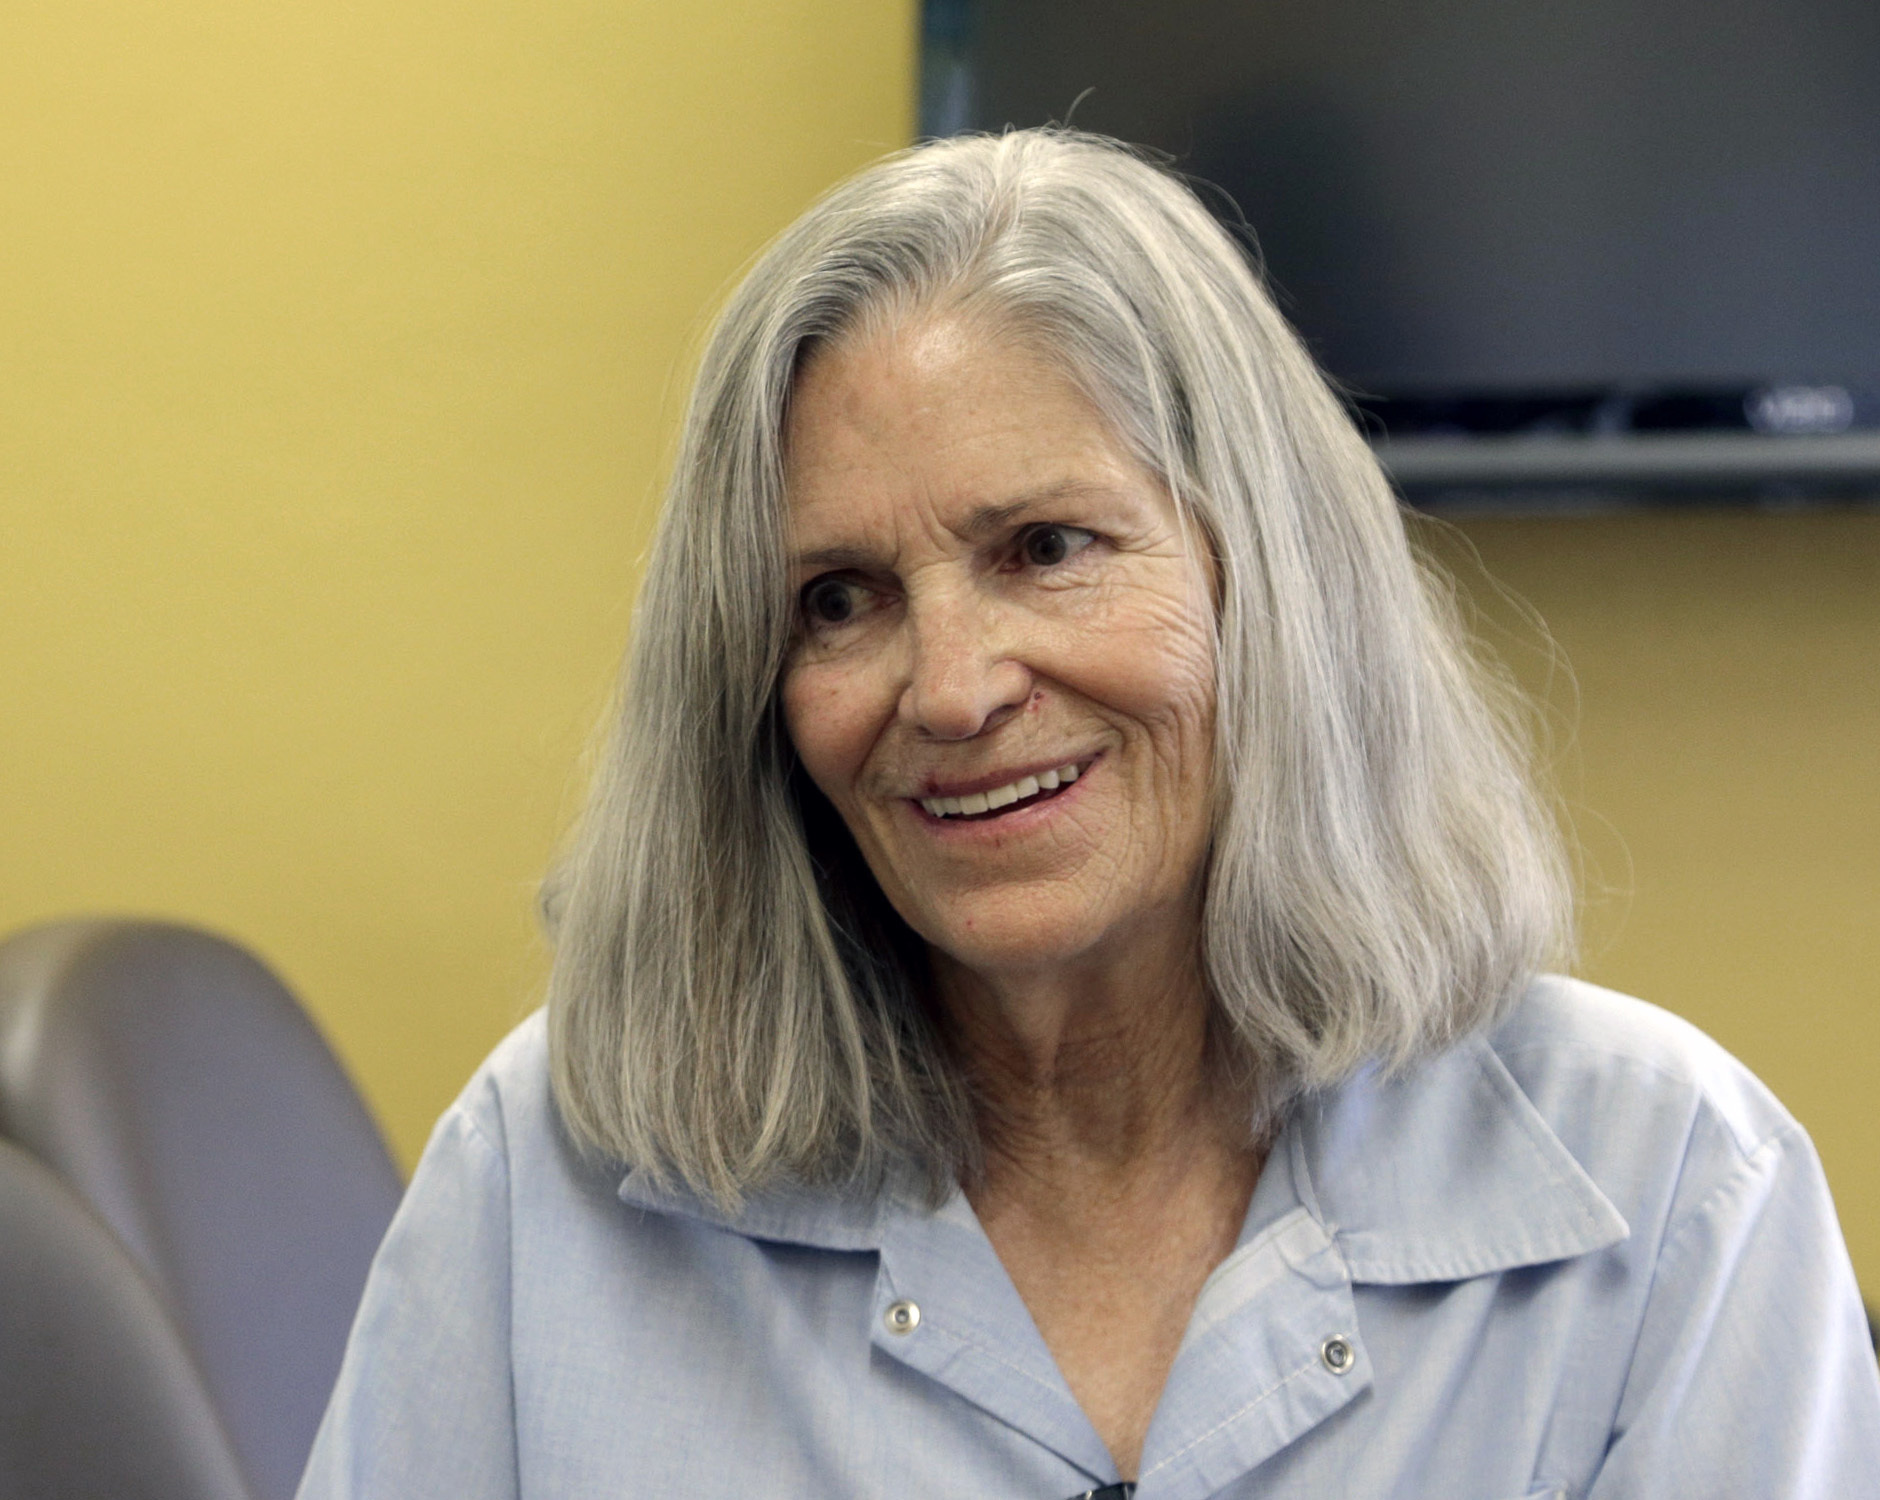 Former Charles Manson follower Leslie Van Houten confers, with her attorney Rich Pfeiffer (not shown), during a break from her hearing before the California Board of Parole Hearings at the California Institution for Women in Chino, Calif., on April 14, 2016. (AP Photo/Nick Ut)